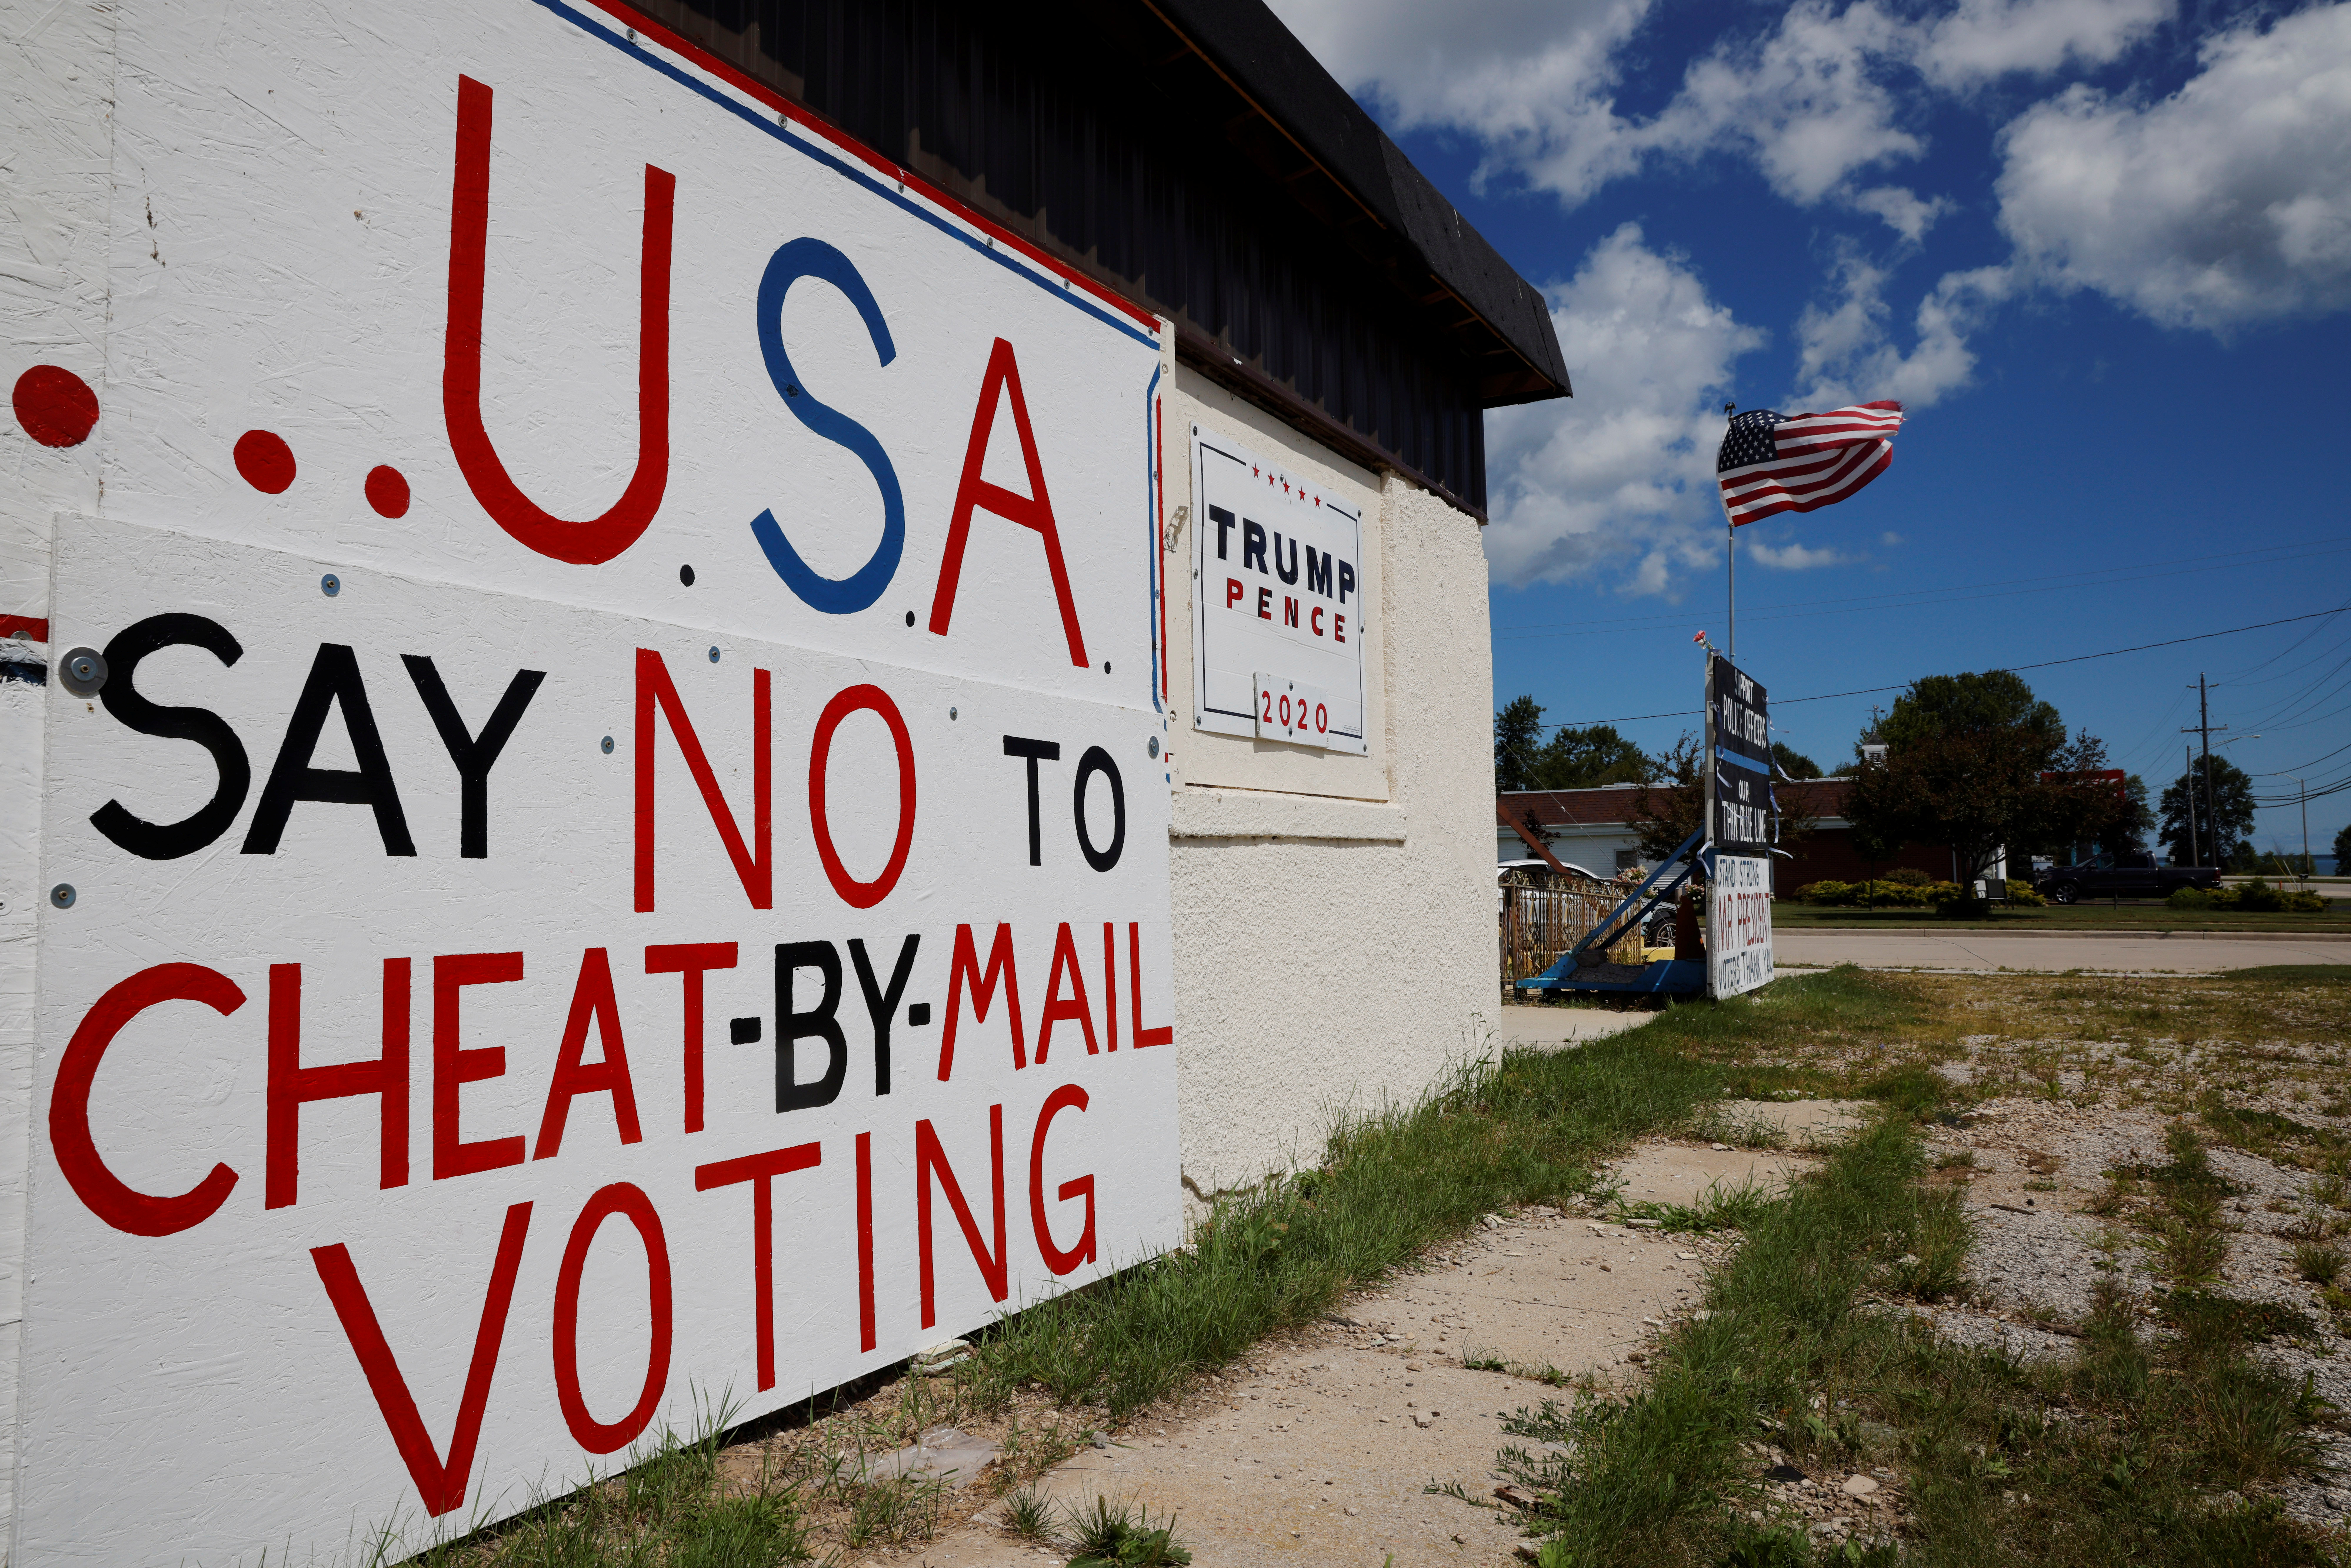 Handmade signs supporting U.S. President Donald Trump, including one opposing mail-in voting, stand outside a business in Manitowoc, Wisconsin, U.S., August 18, 2020. REUTERS/Brian Snyder